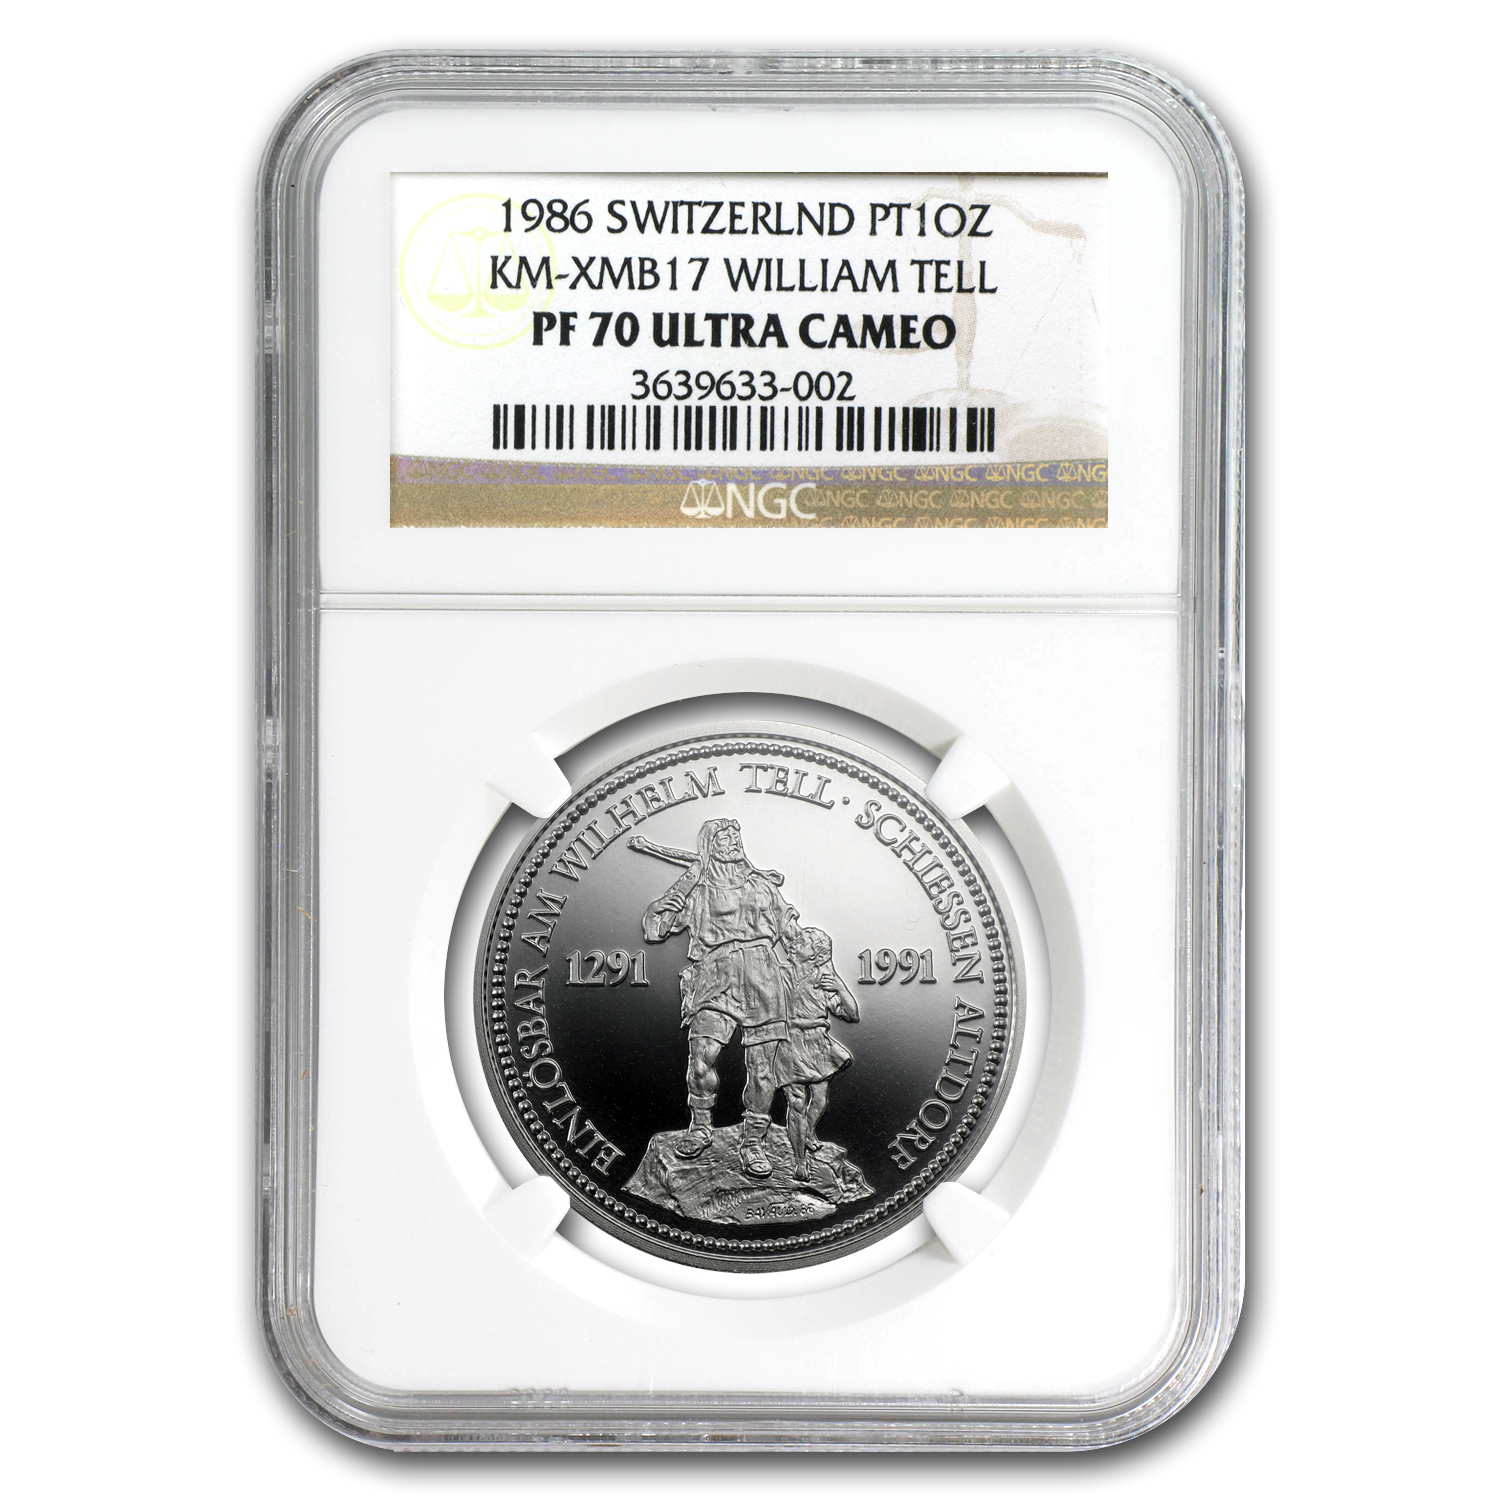 1986 1 oz Proof Swiss Platinum Shooting Thaler PF-70 NGC